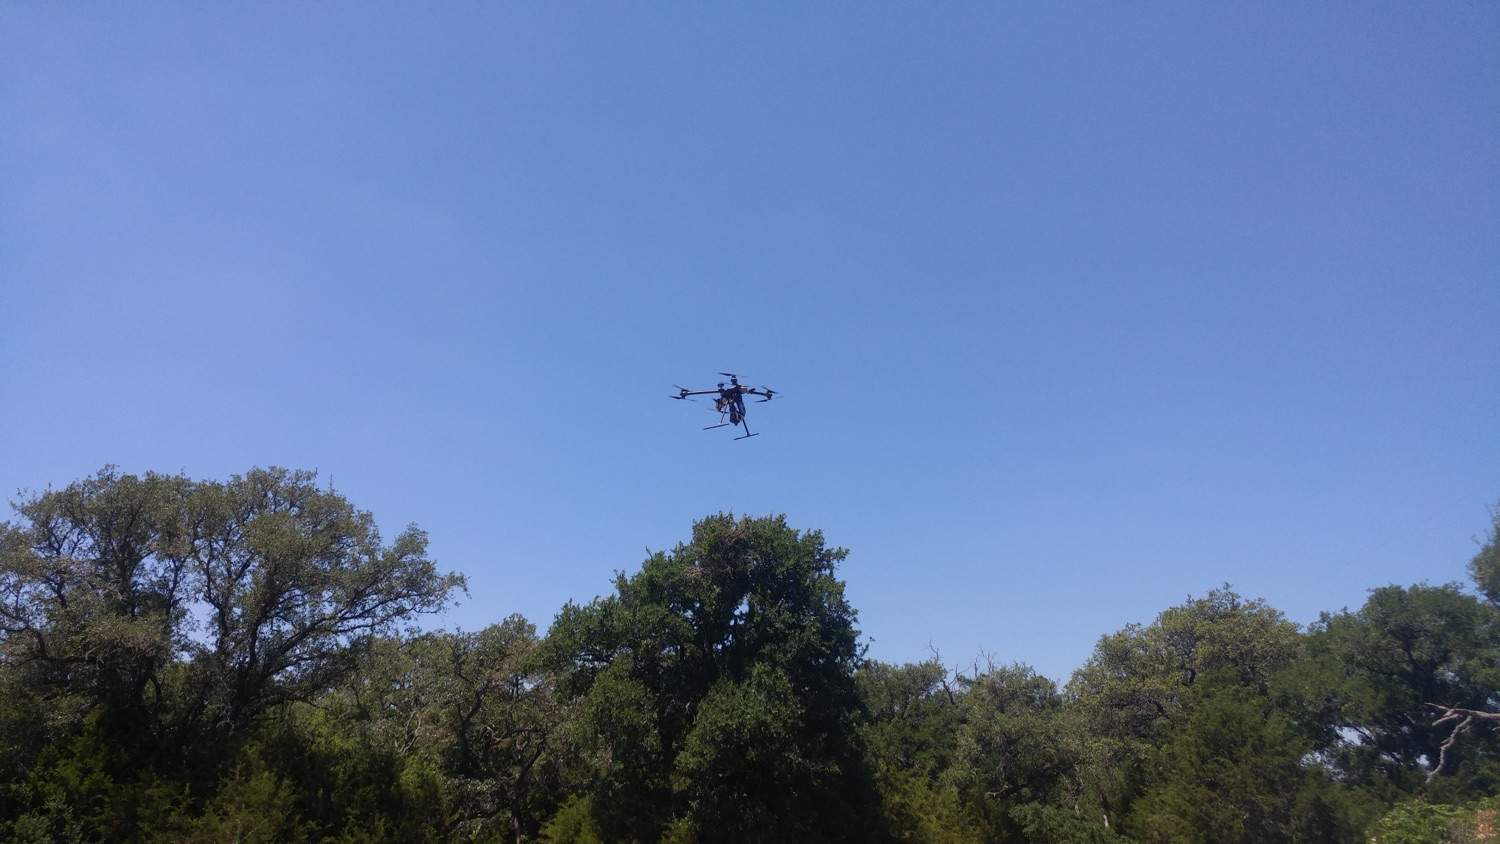 Drone in flight over the Forensic Anthropology Research Facility.